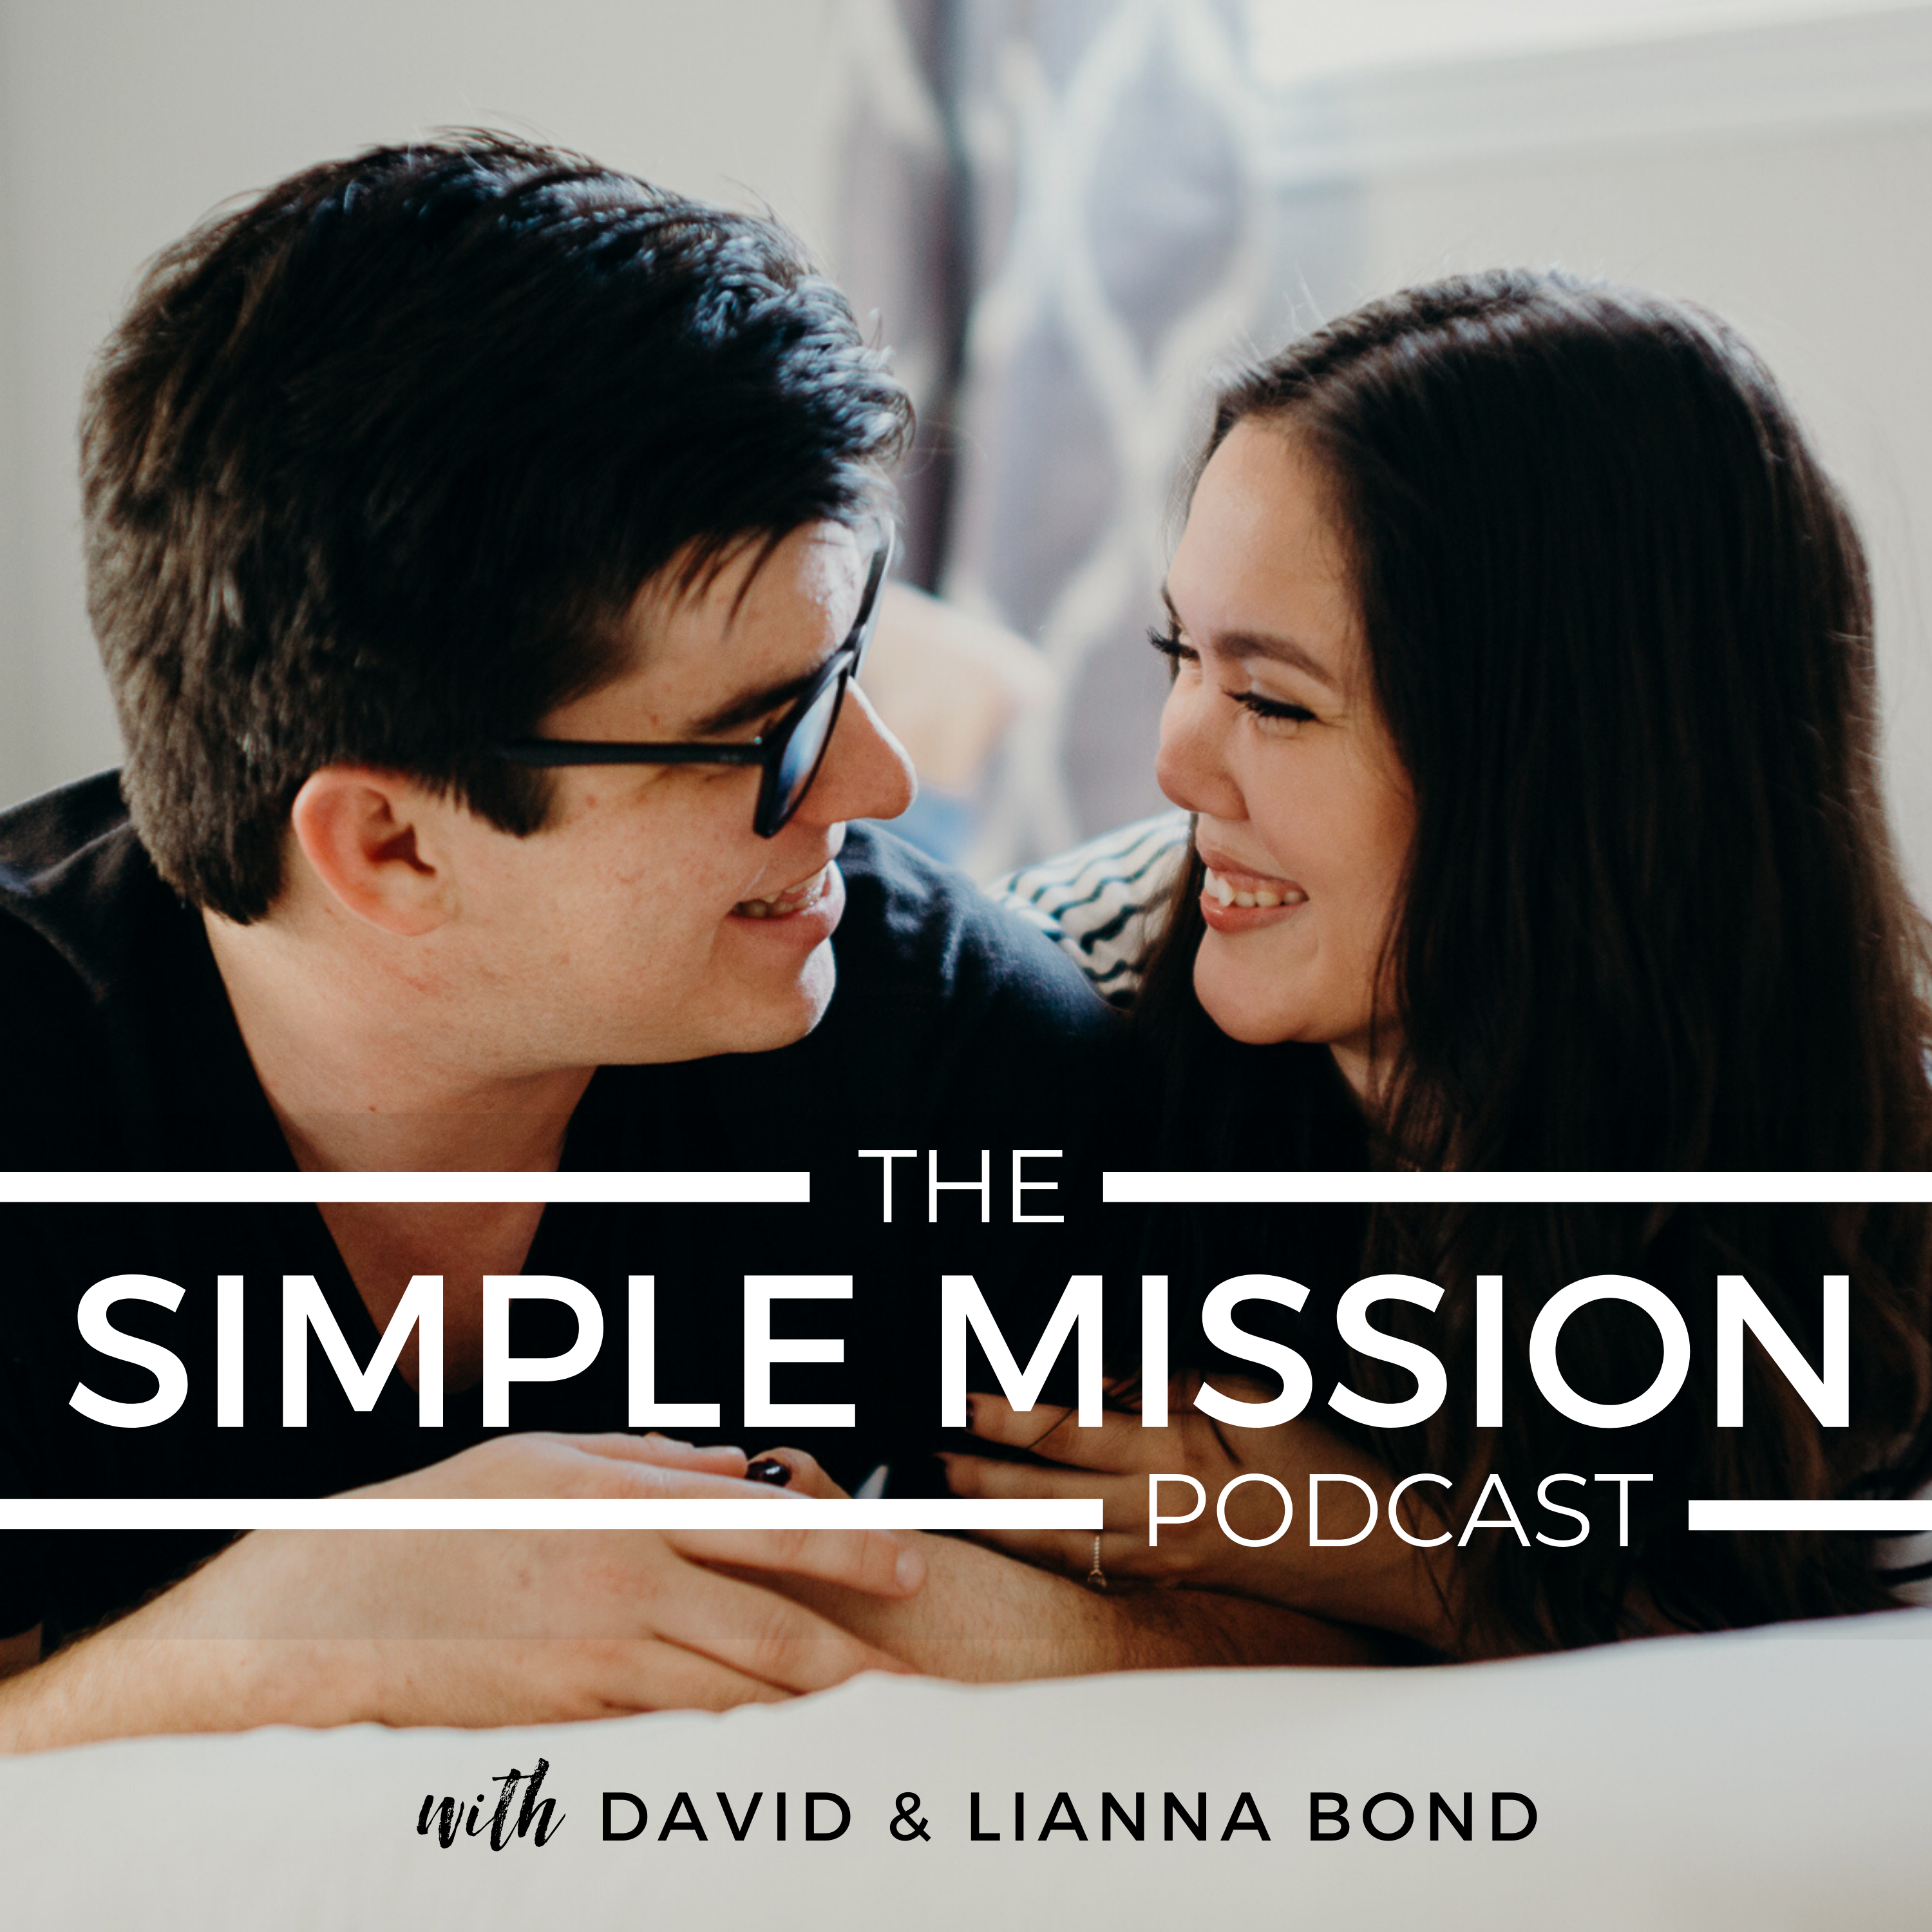 The Simple Mission Podcast